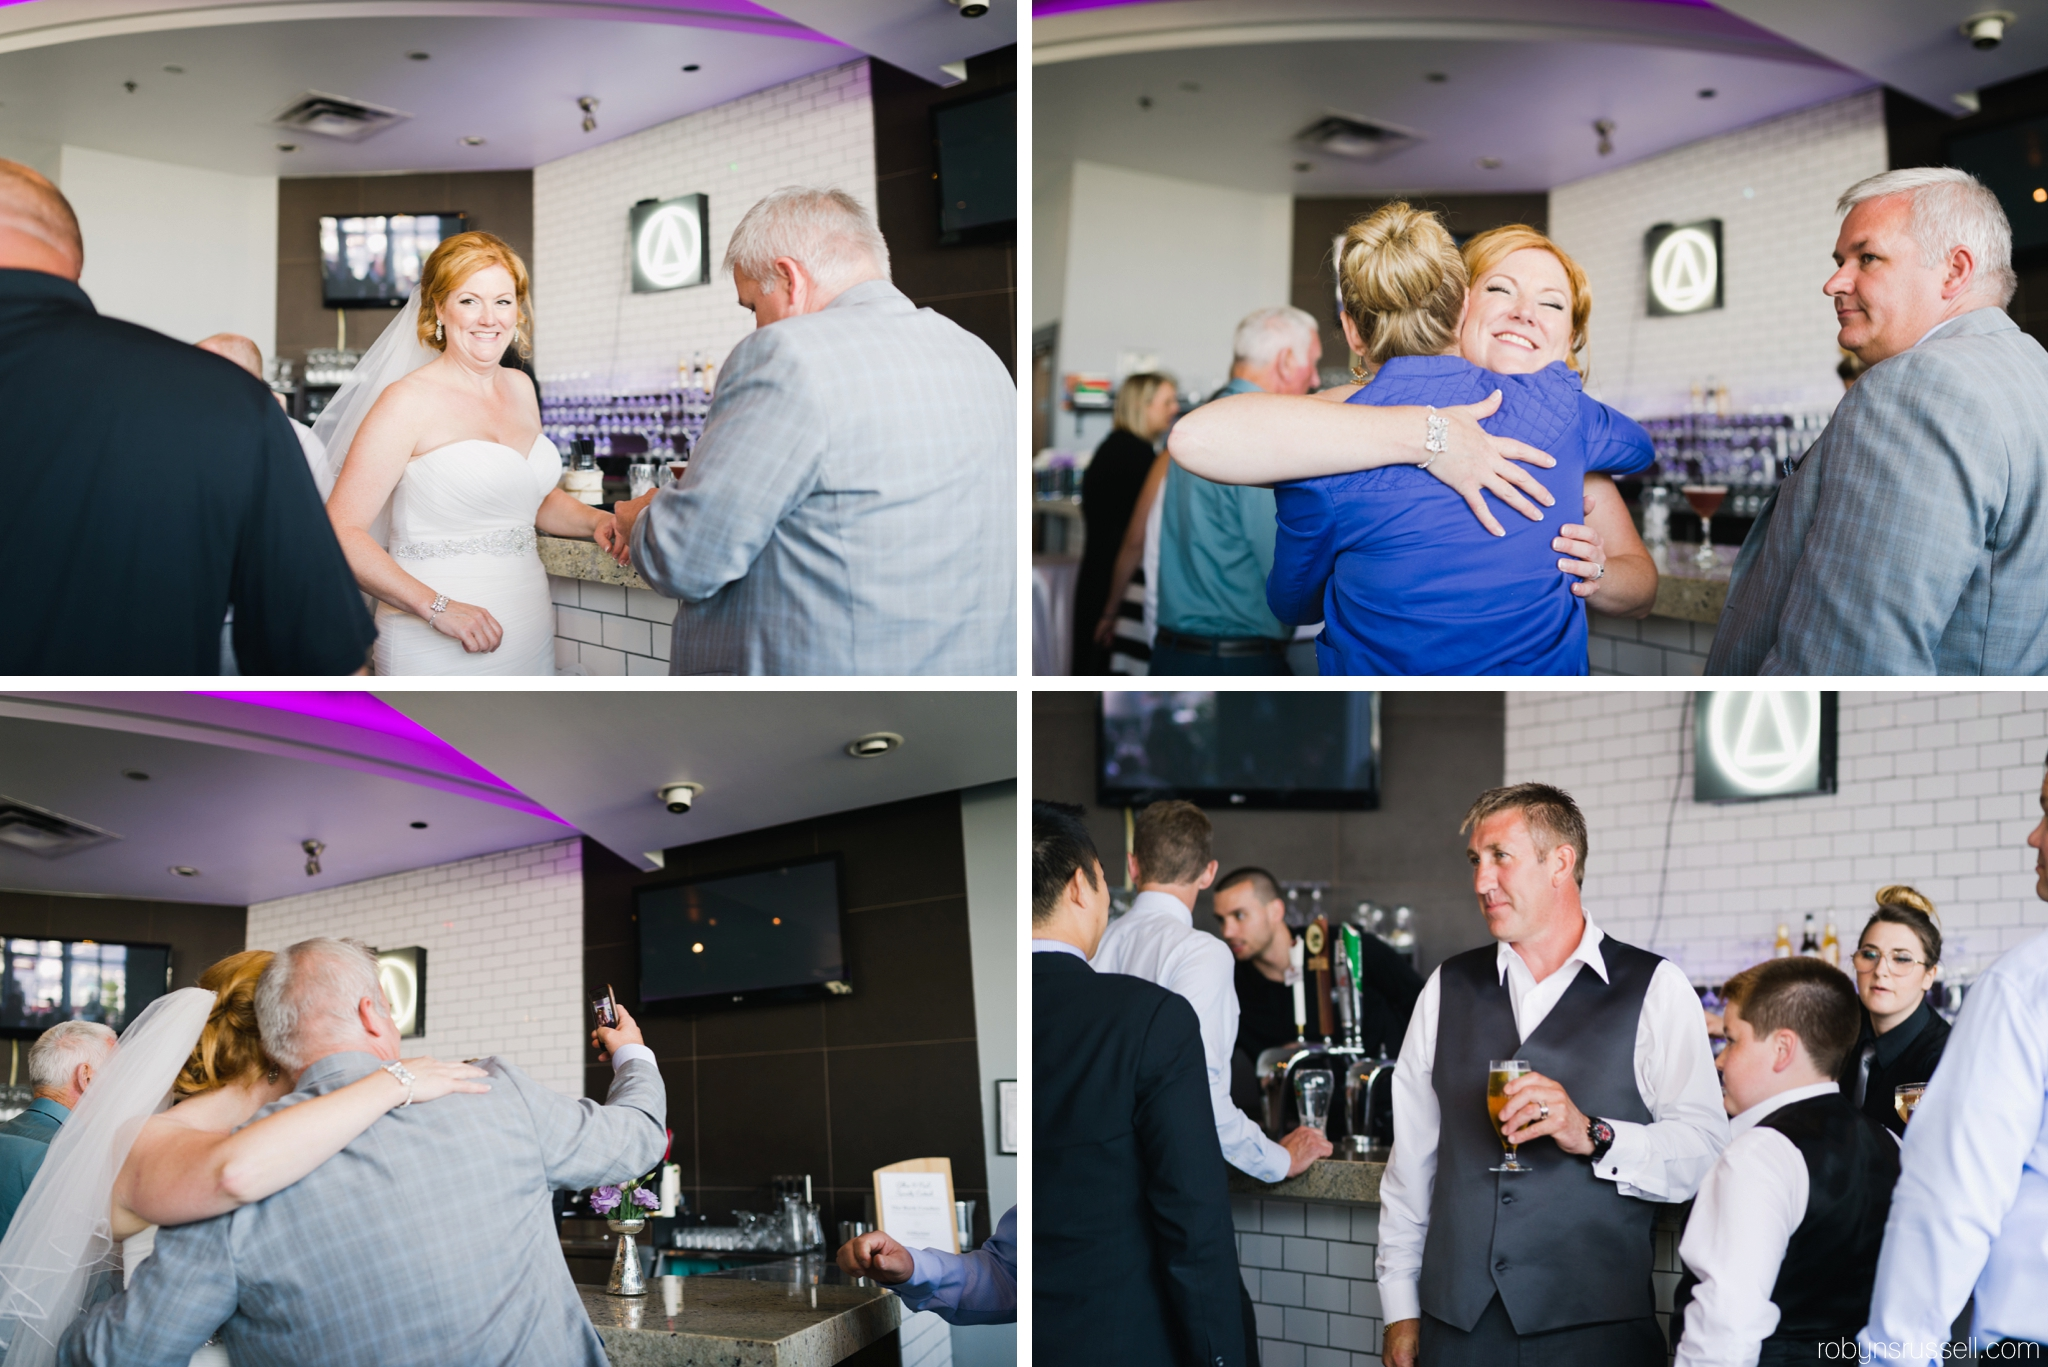 28-guests-at-gillian-and-paul-wedding-harbour-banquet-center-oakville.jpg